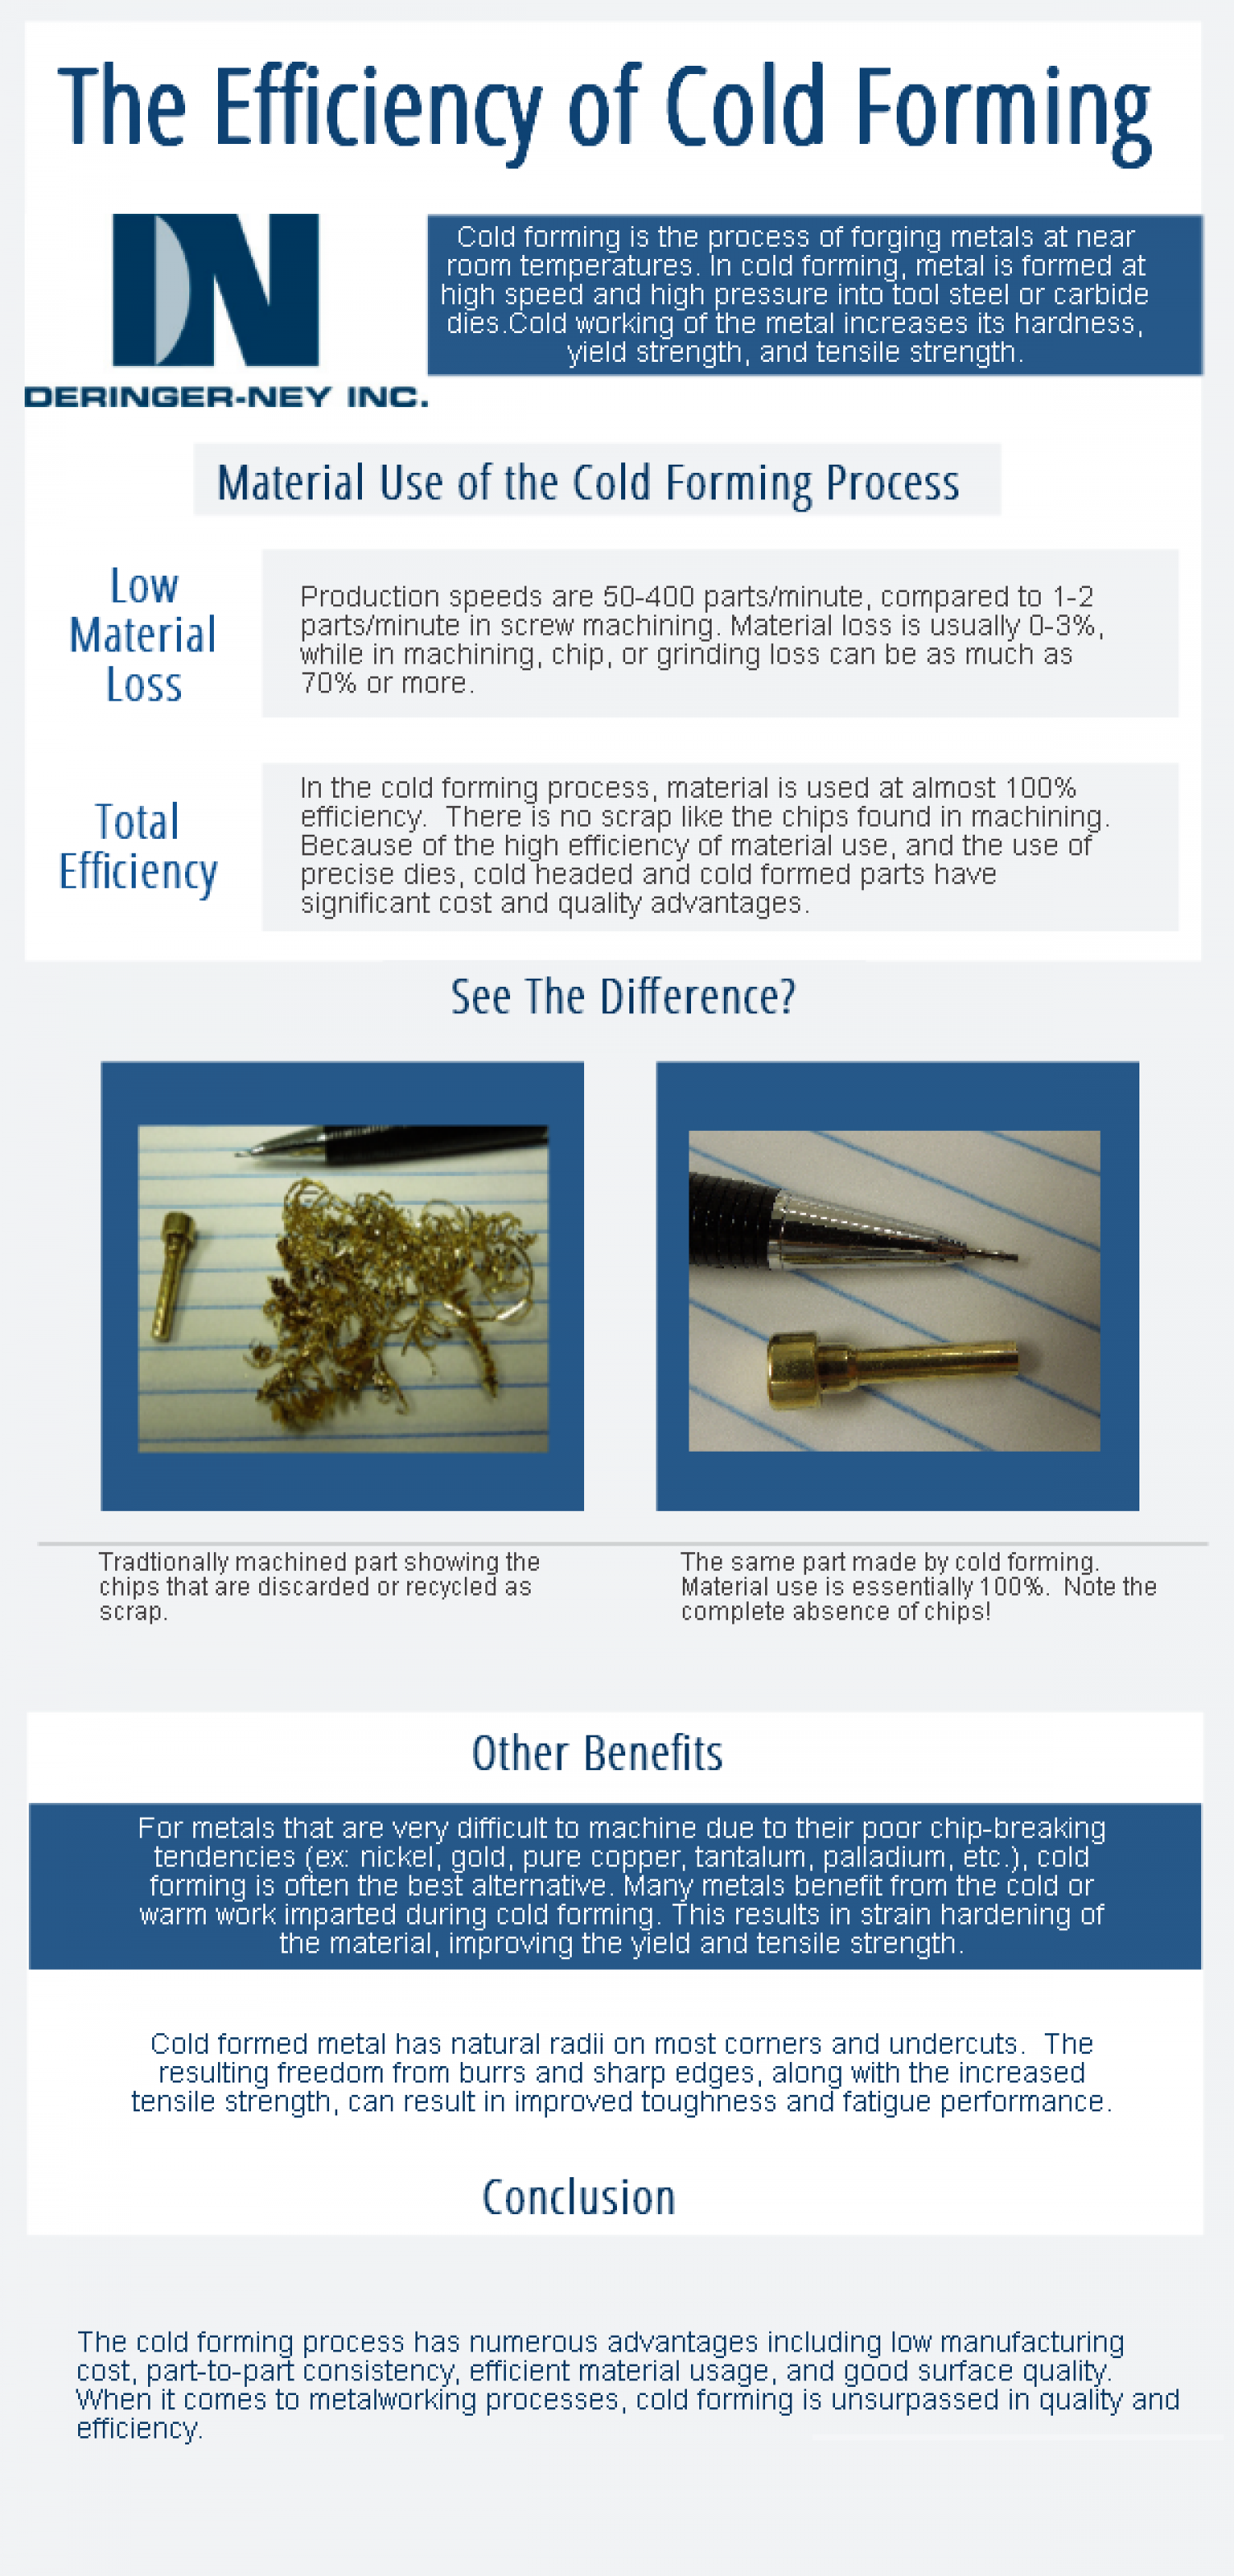 The Efficieny of Cold Forming Infographic